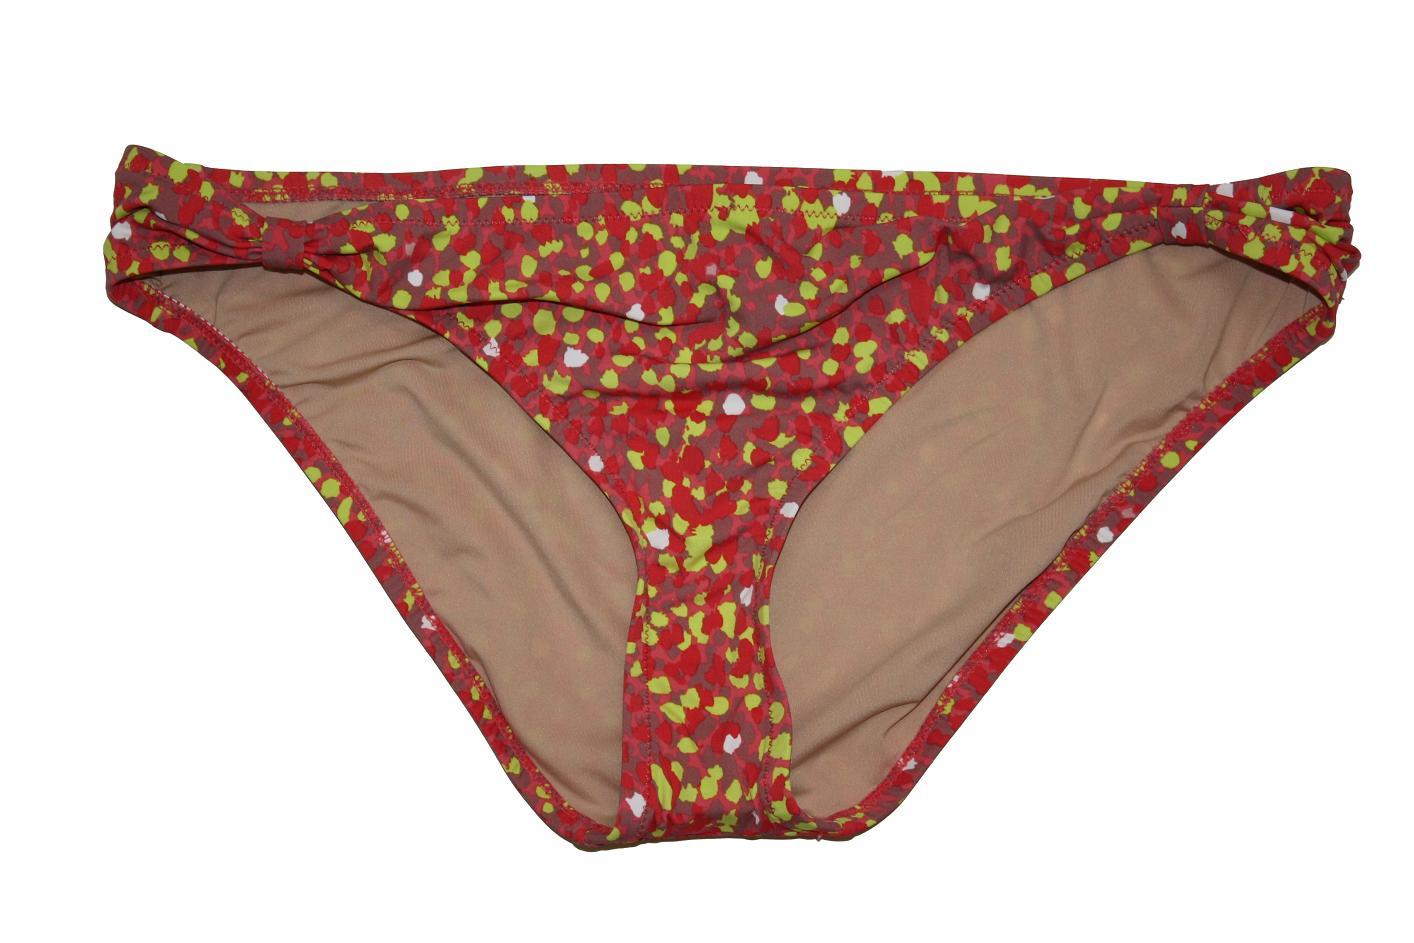 f8bbc1008a JCrew Splatter Dot Hipster Bikini Bottoms Bathing Suit 09691  44 Pink Multi  M